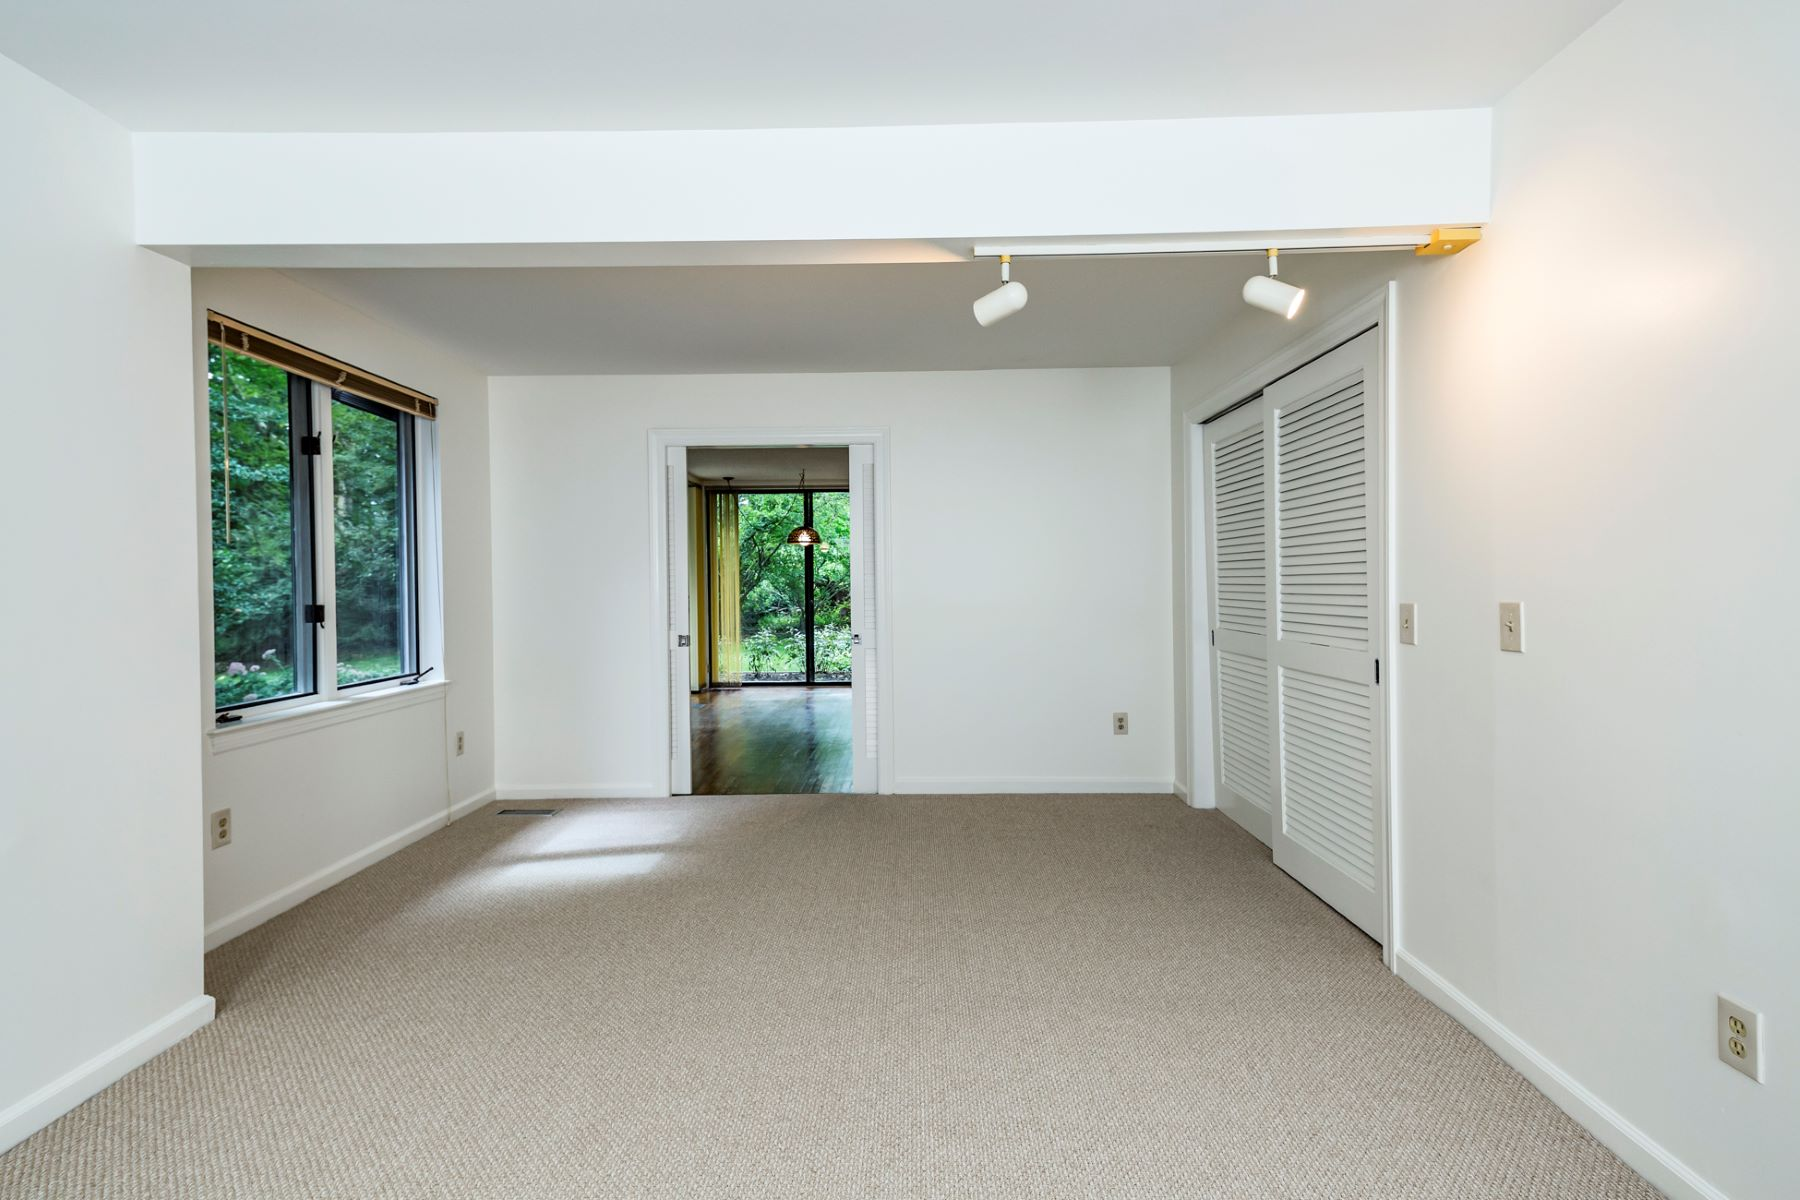 Additional photo for property listing at Lovely Constitution Hill Home with Renovation Plan 28 Constitution Hill West, Princeton, New Jersey 08540 United States